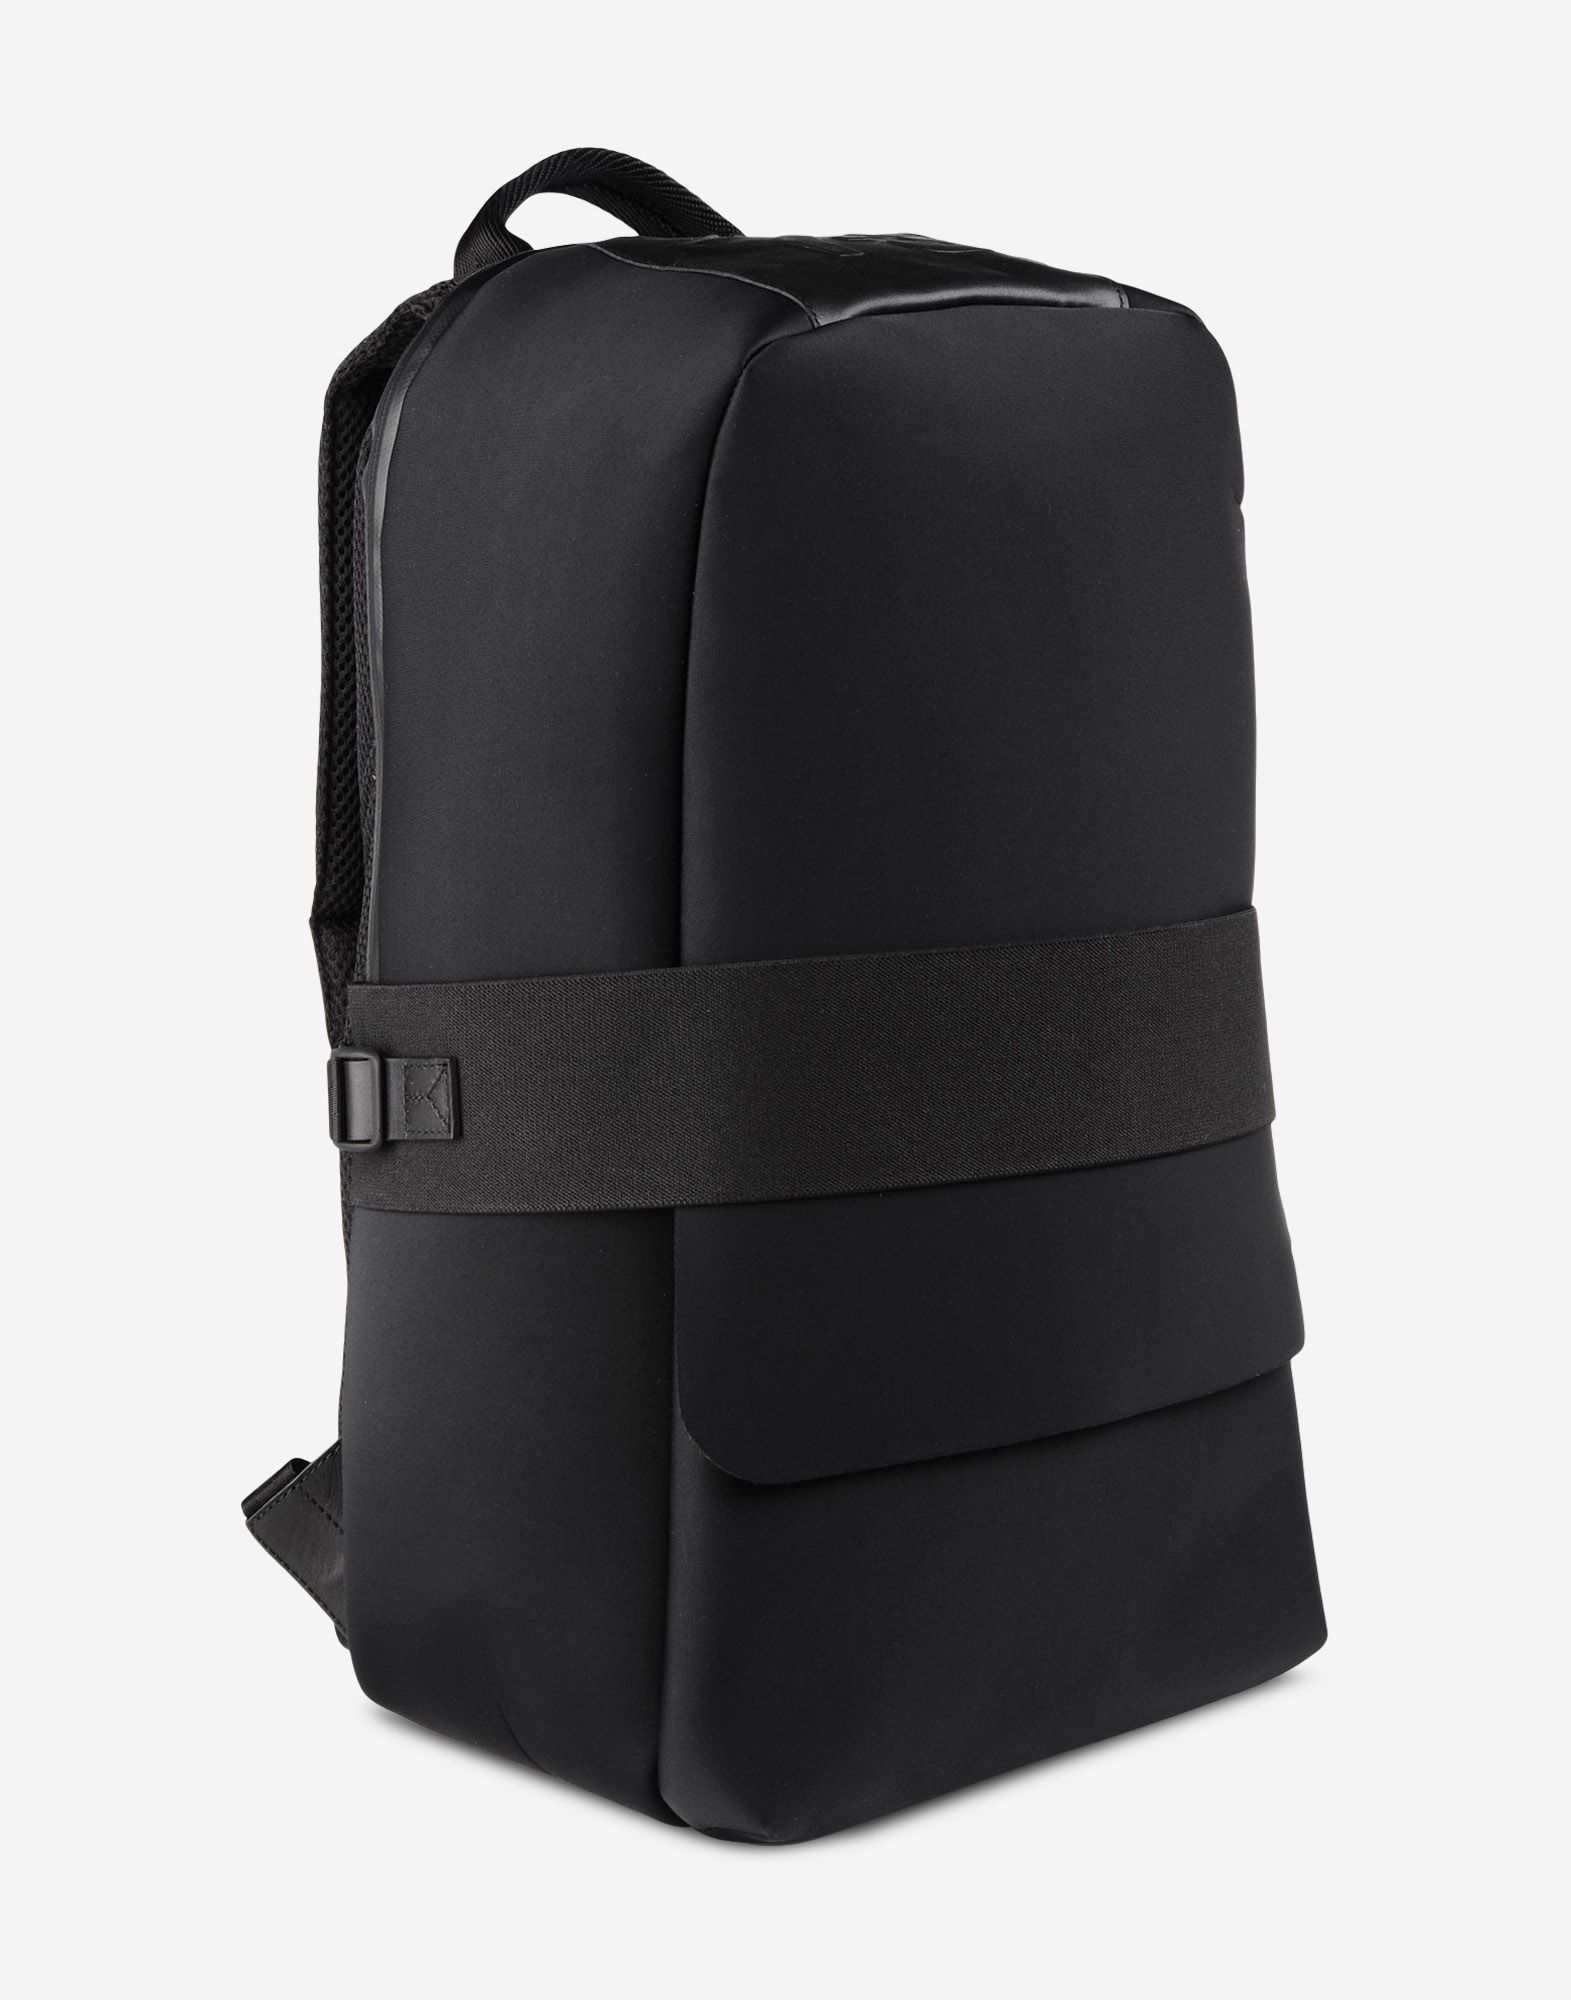 12976905f2 Buy adidas limited edition backpack | Up to 43% Discounts